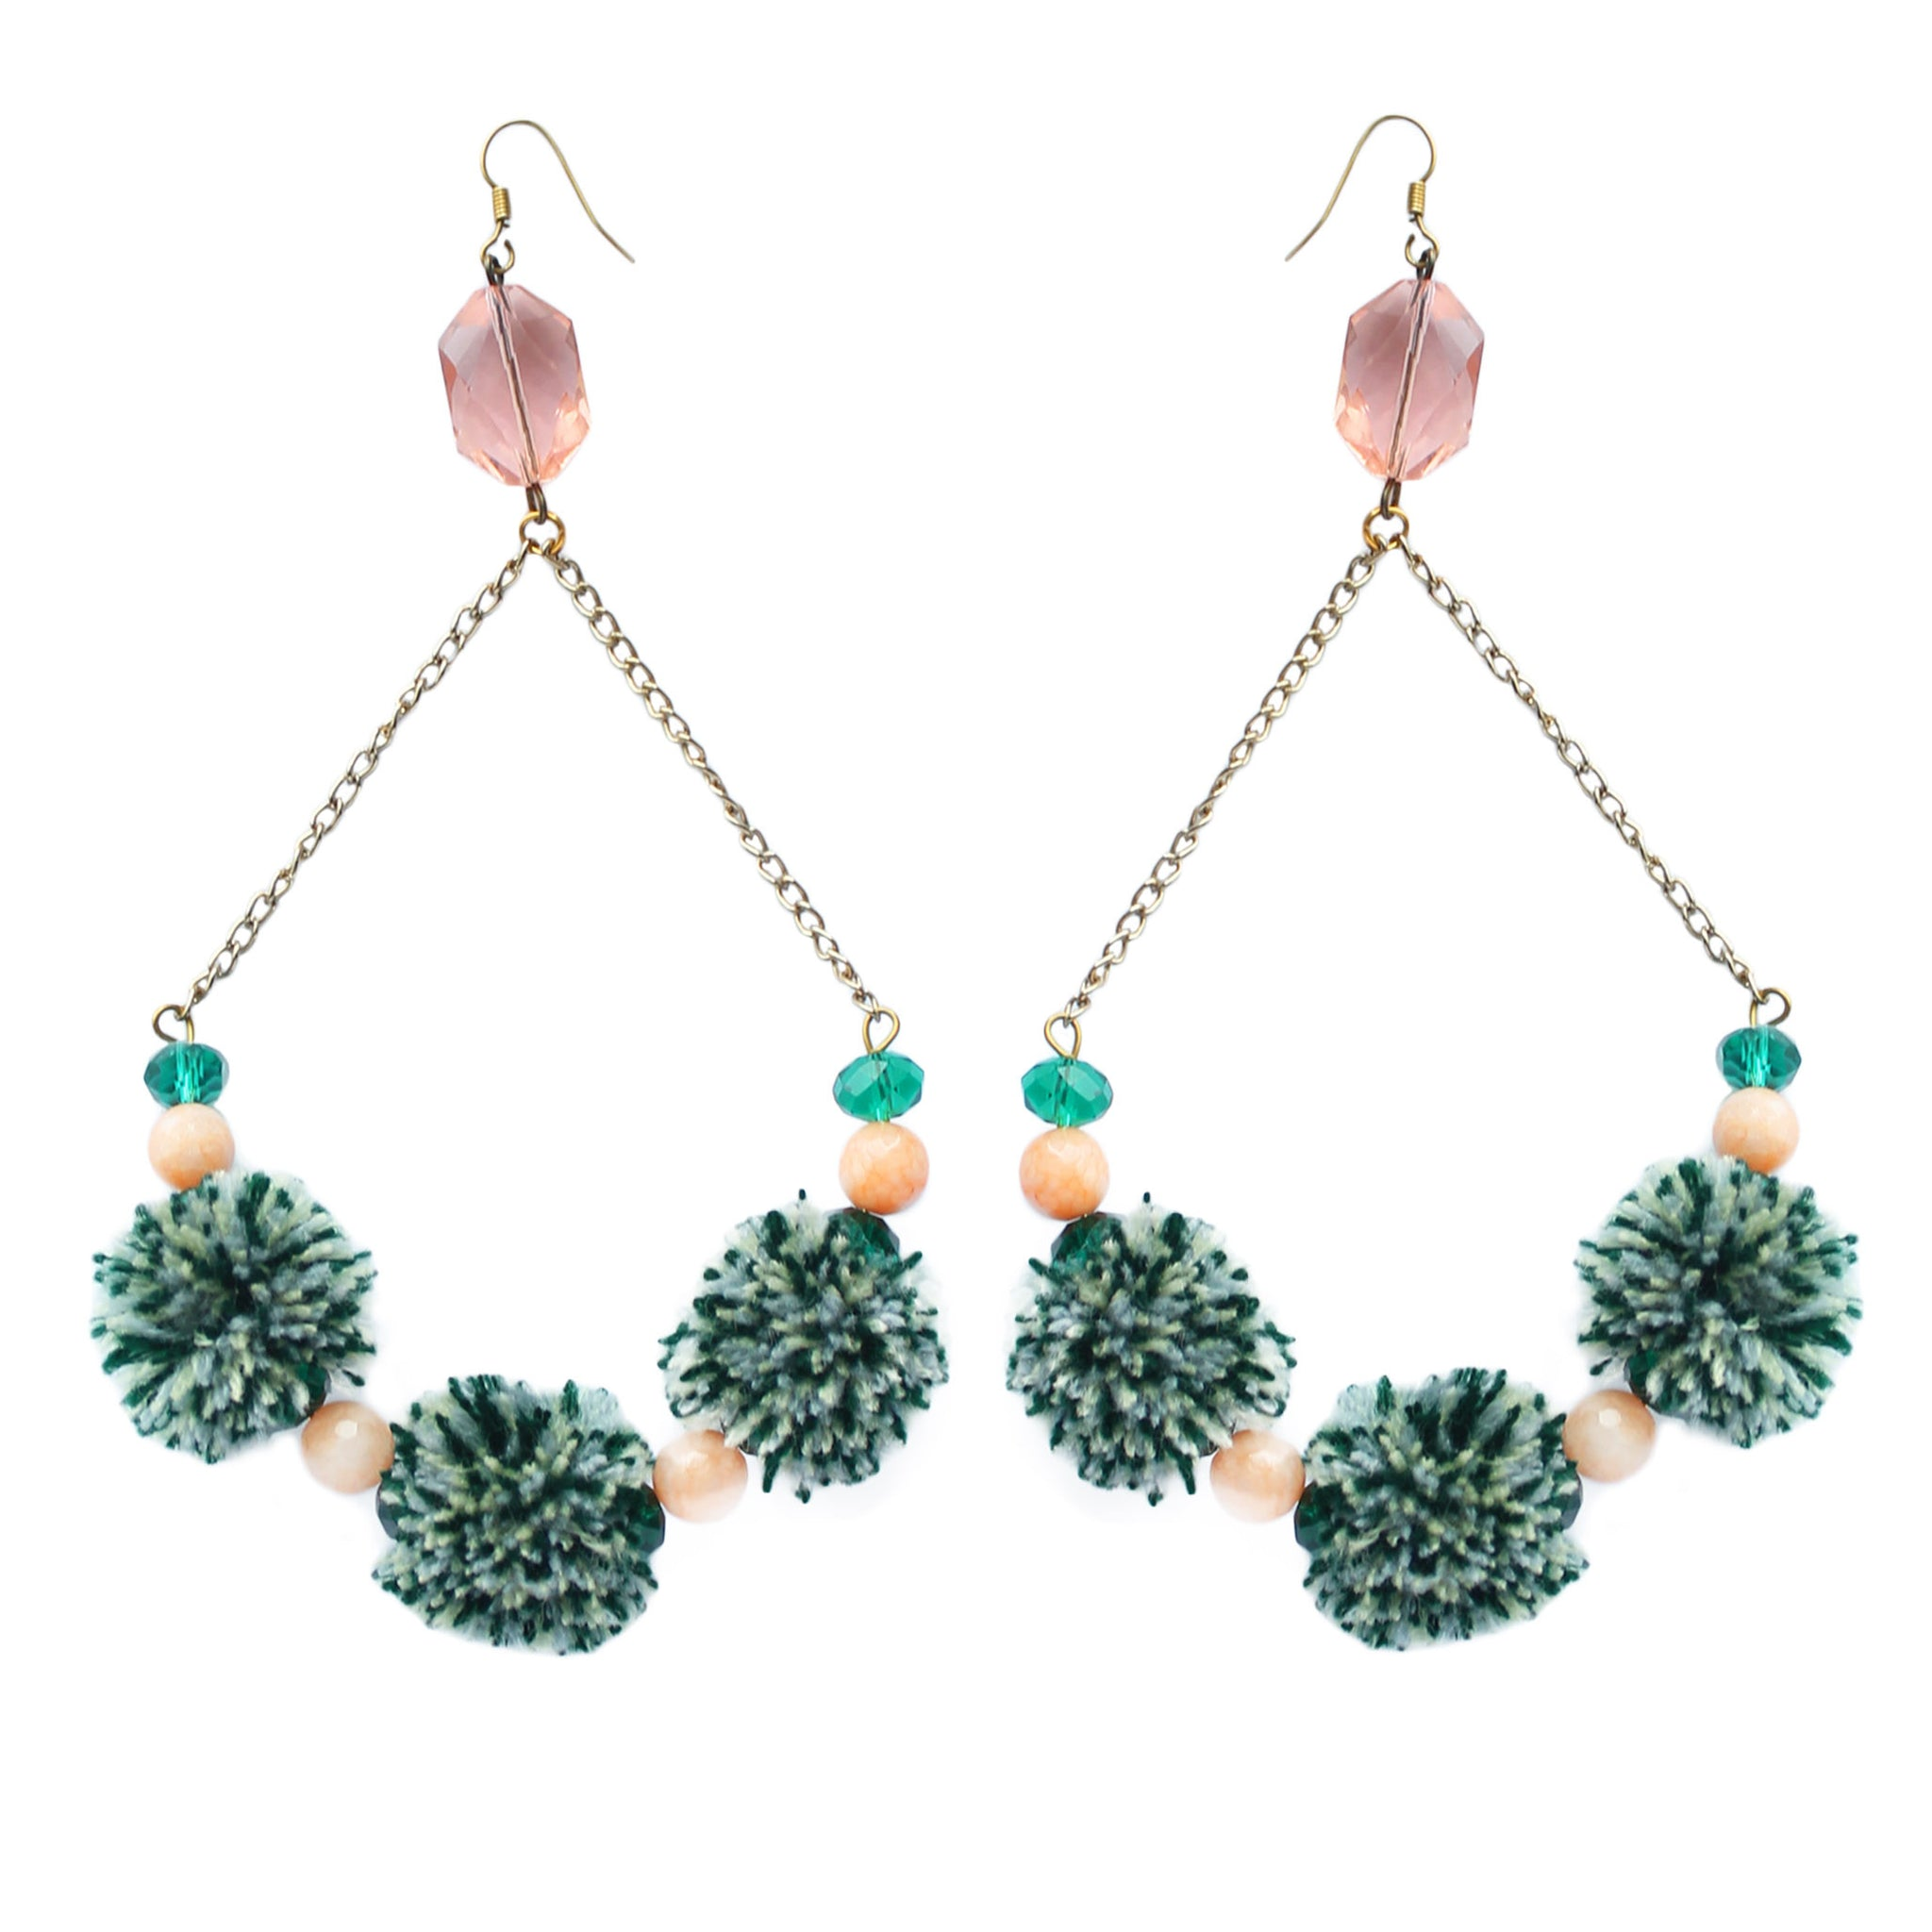 Aphrodite Pom Pom Earrings